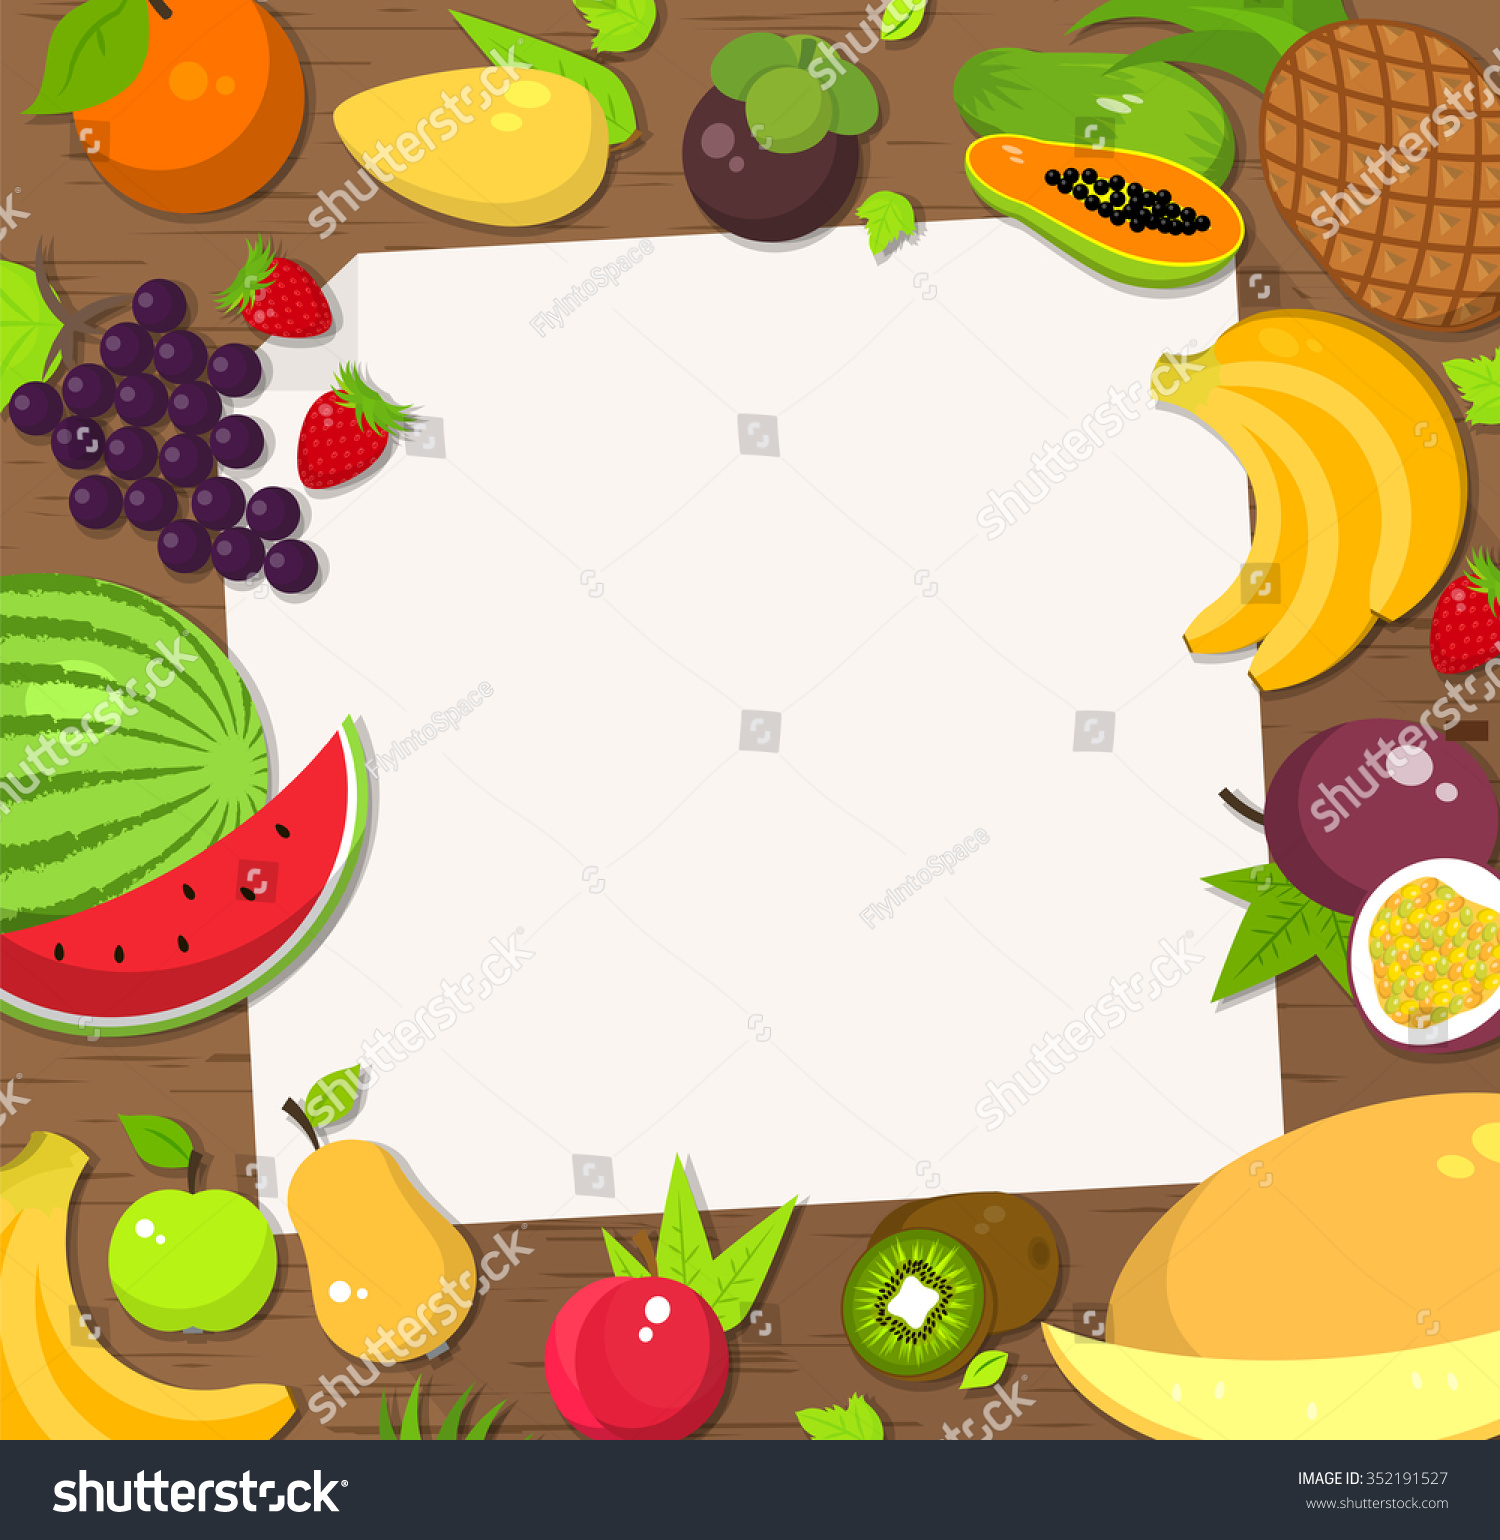 Fresh Fruit Frame Background Bright Colored Stock Vector 352191527 ...